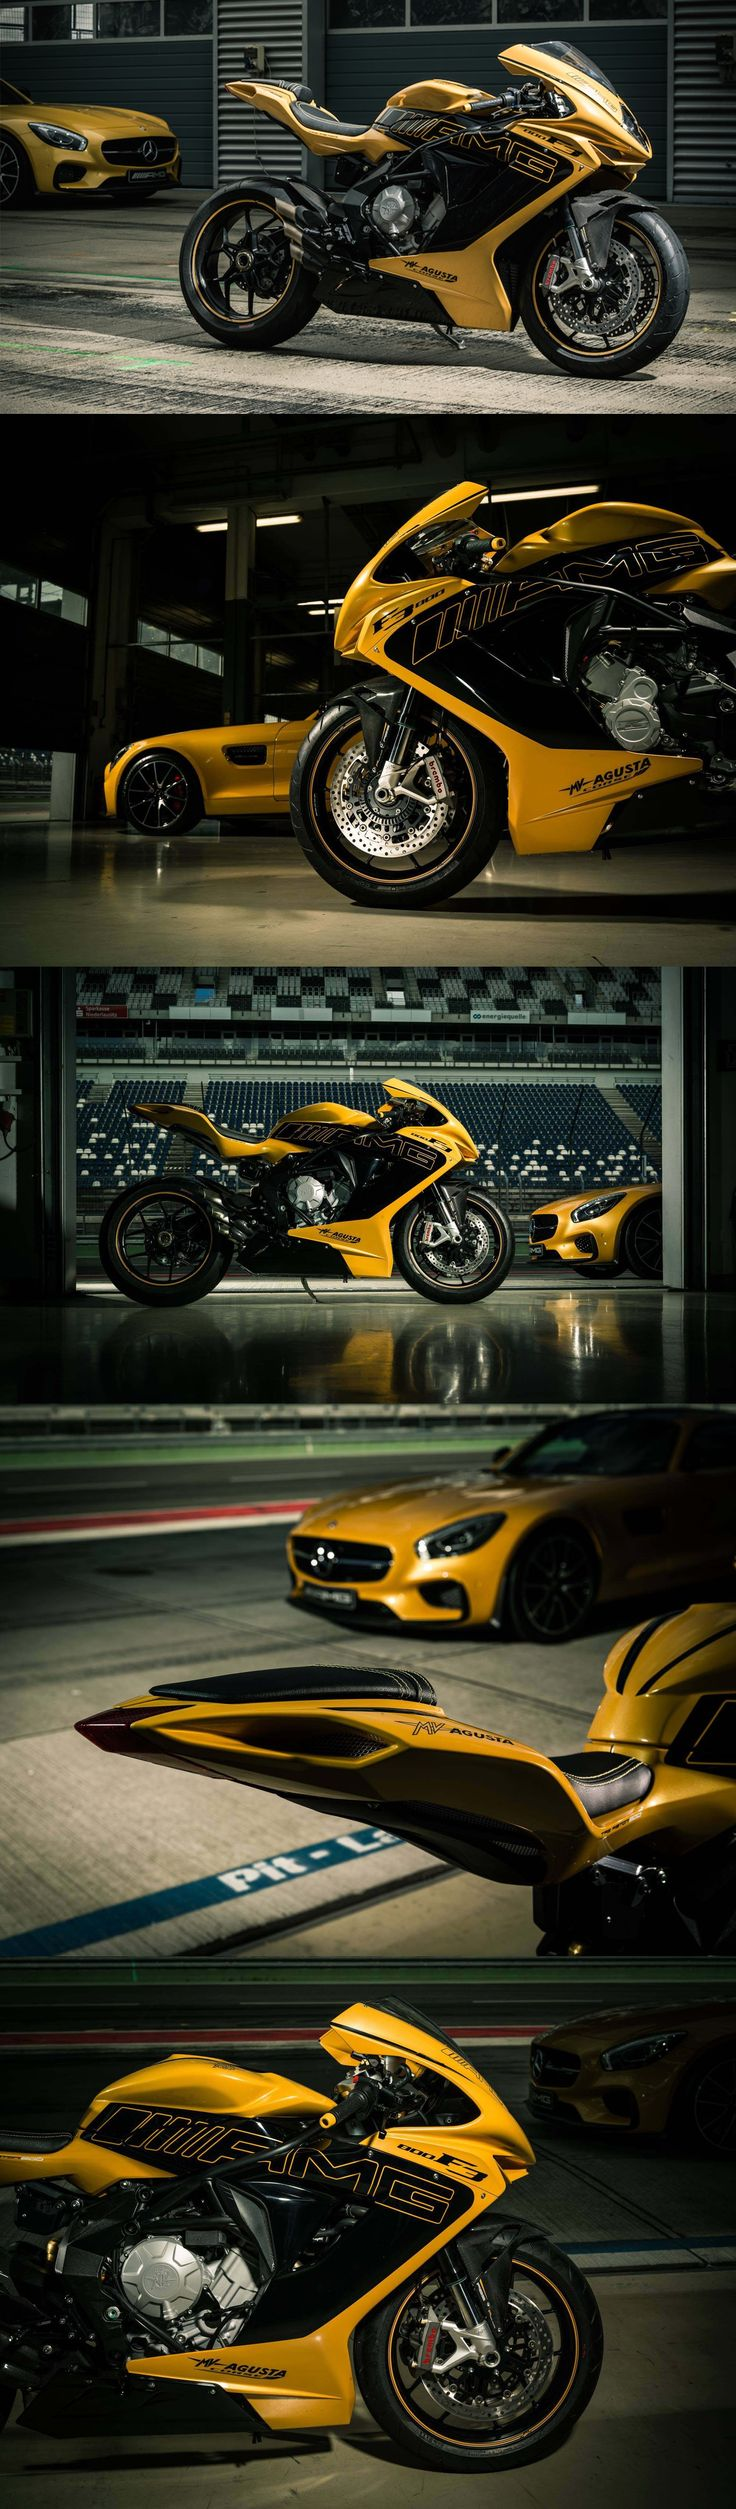 "MV Agusta F3 800 ""Solar Beam"" Edition with Mercedes-AMG GT"